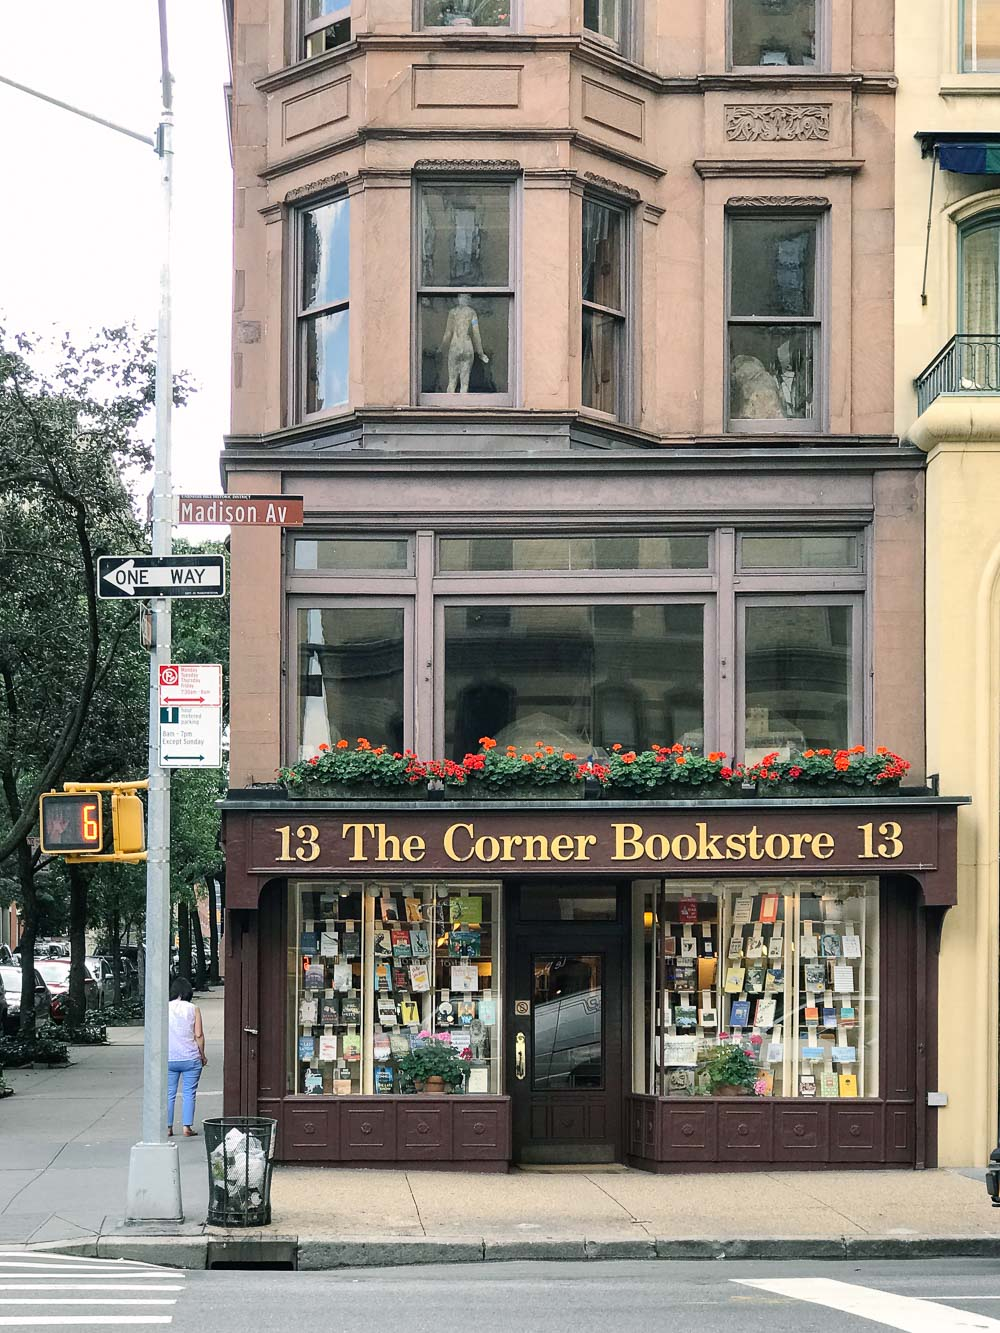 Upper East Side bookstores